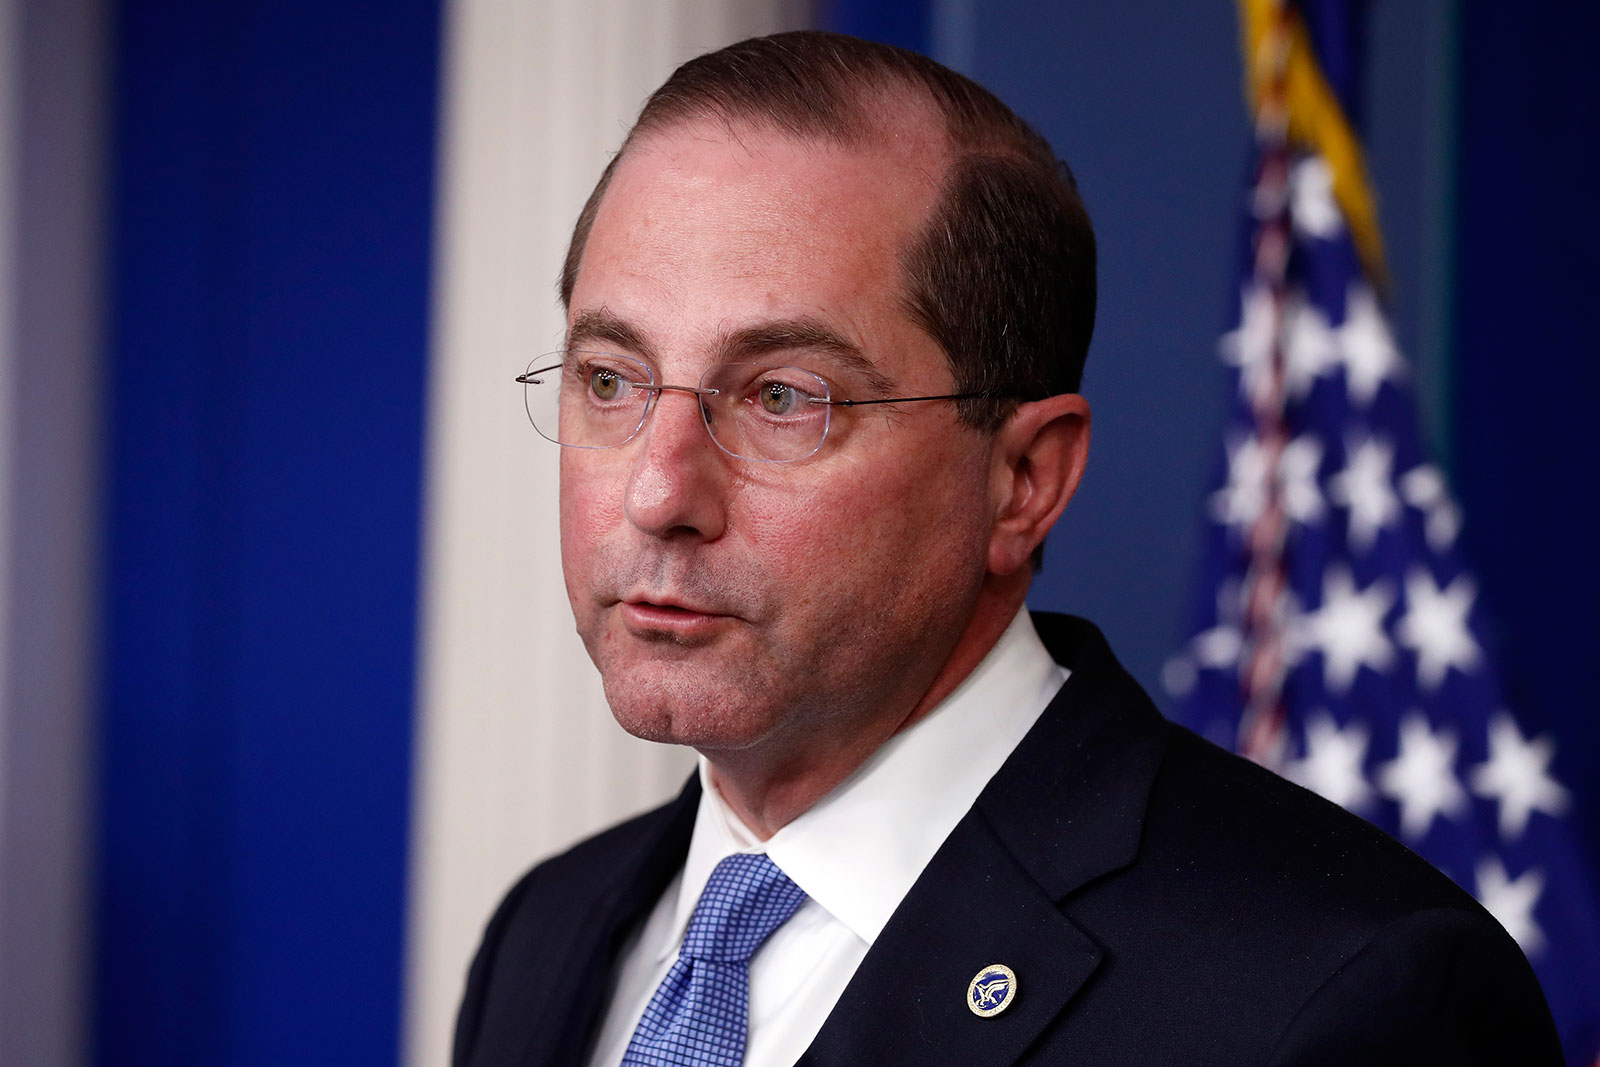 Health and Human Services Secretary Alex Azar speaks about the coronavirus in the James Brady Press Briefing Room of the White House on April 3.